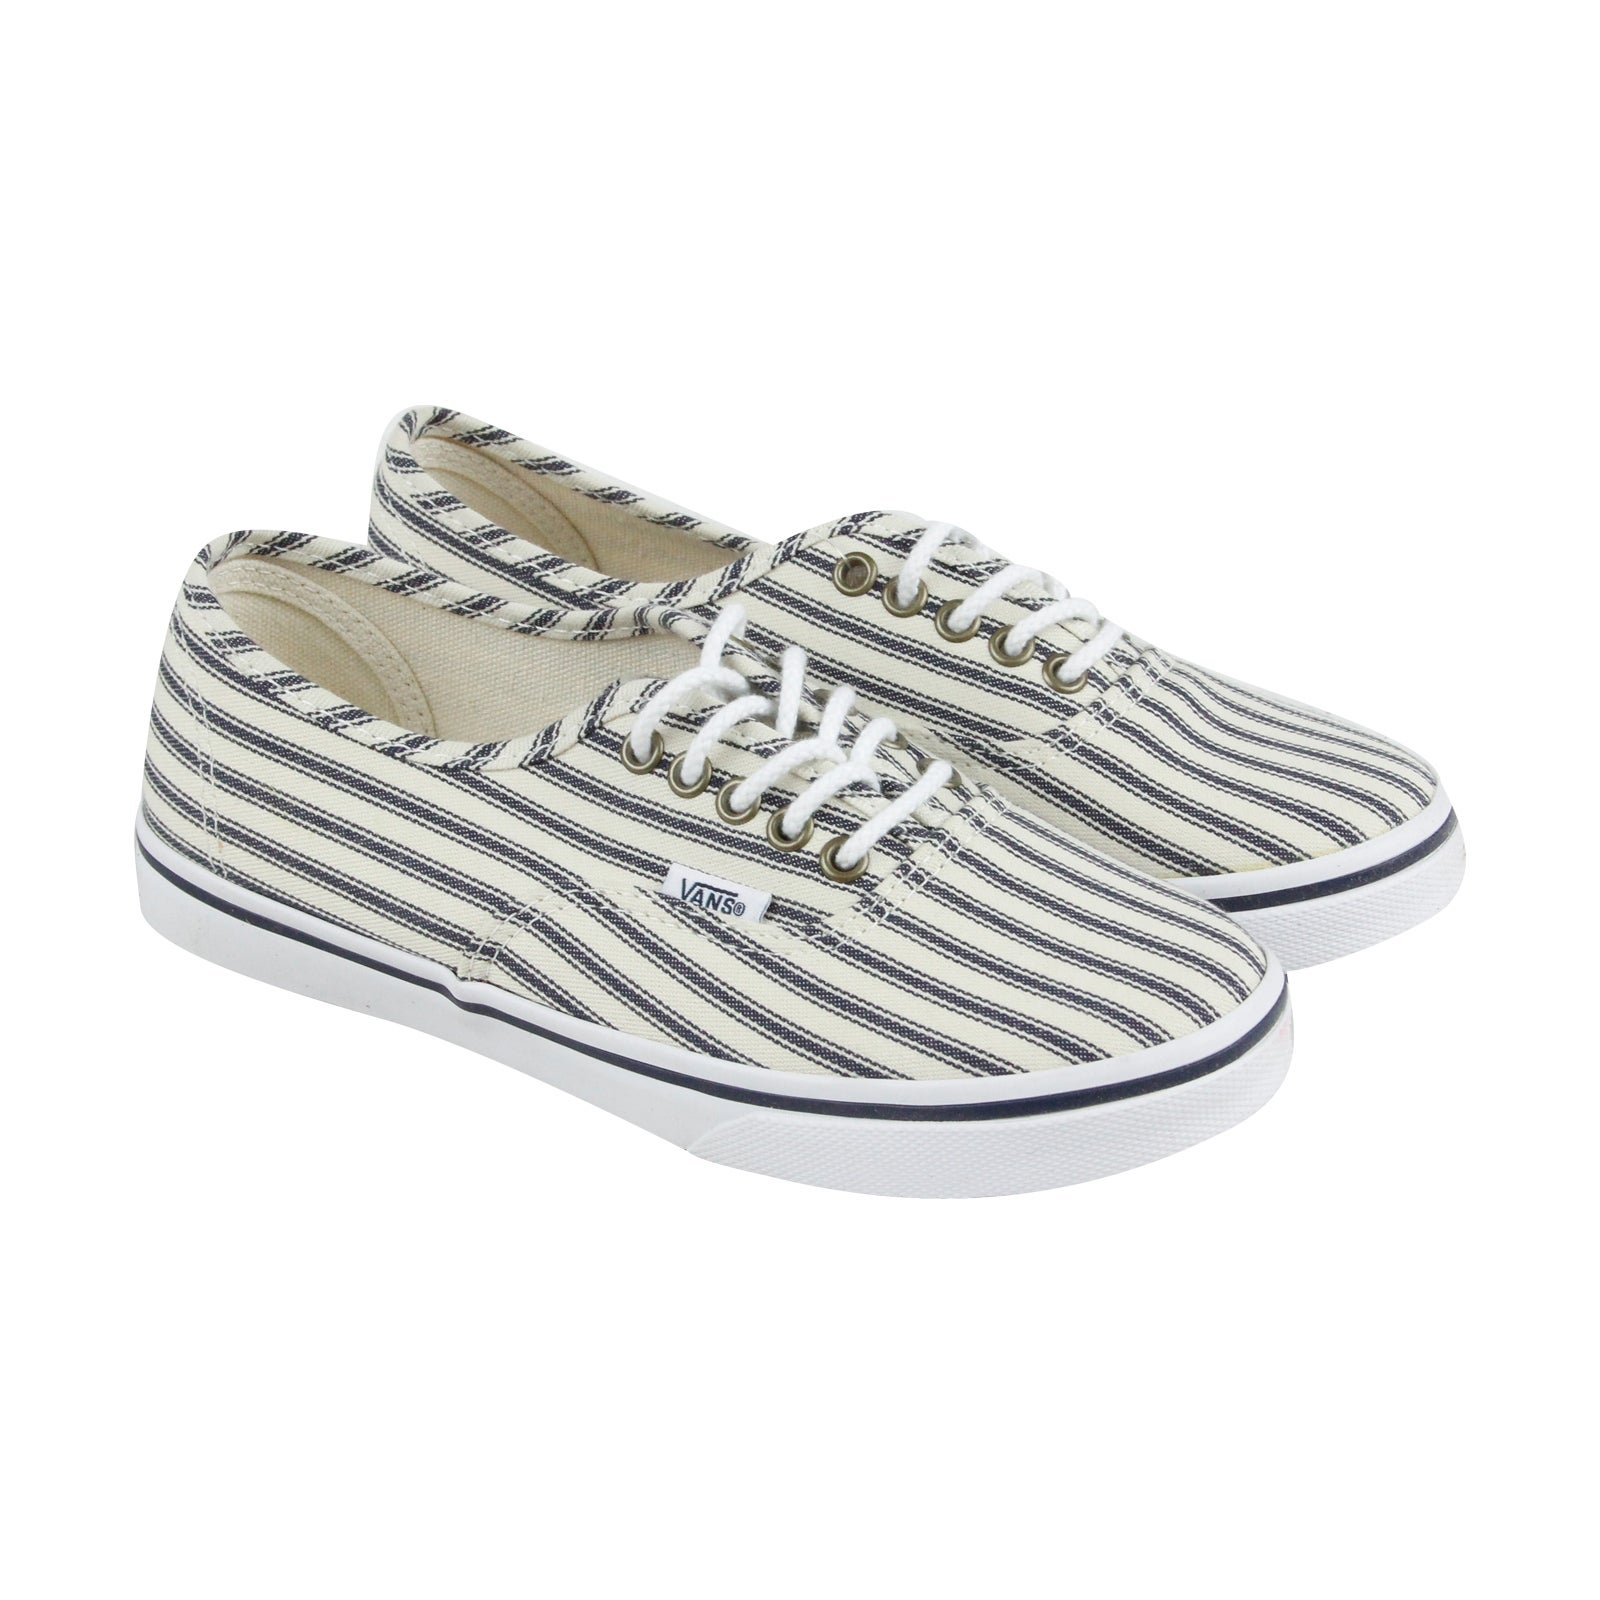 faa674ccec Vans Authentic Lo Pro Mens White Textile Lace Up Sneakers Shoes - Free  Shipping On Orders Over  45 - Overstock - 24326400